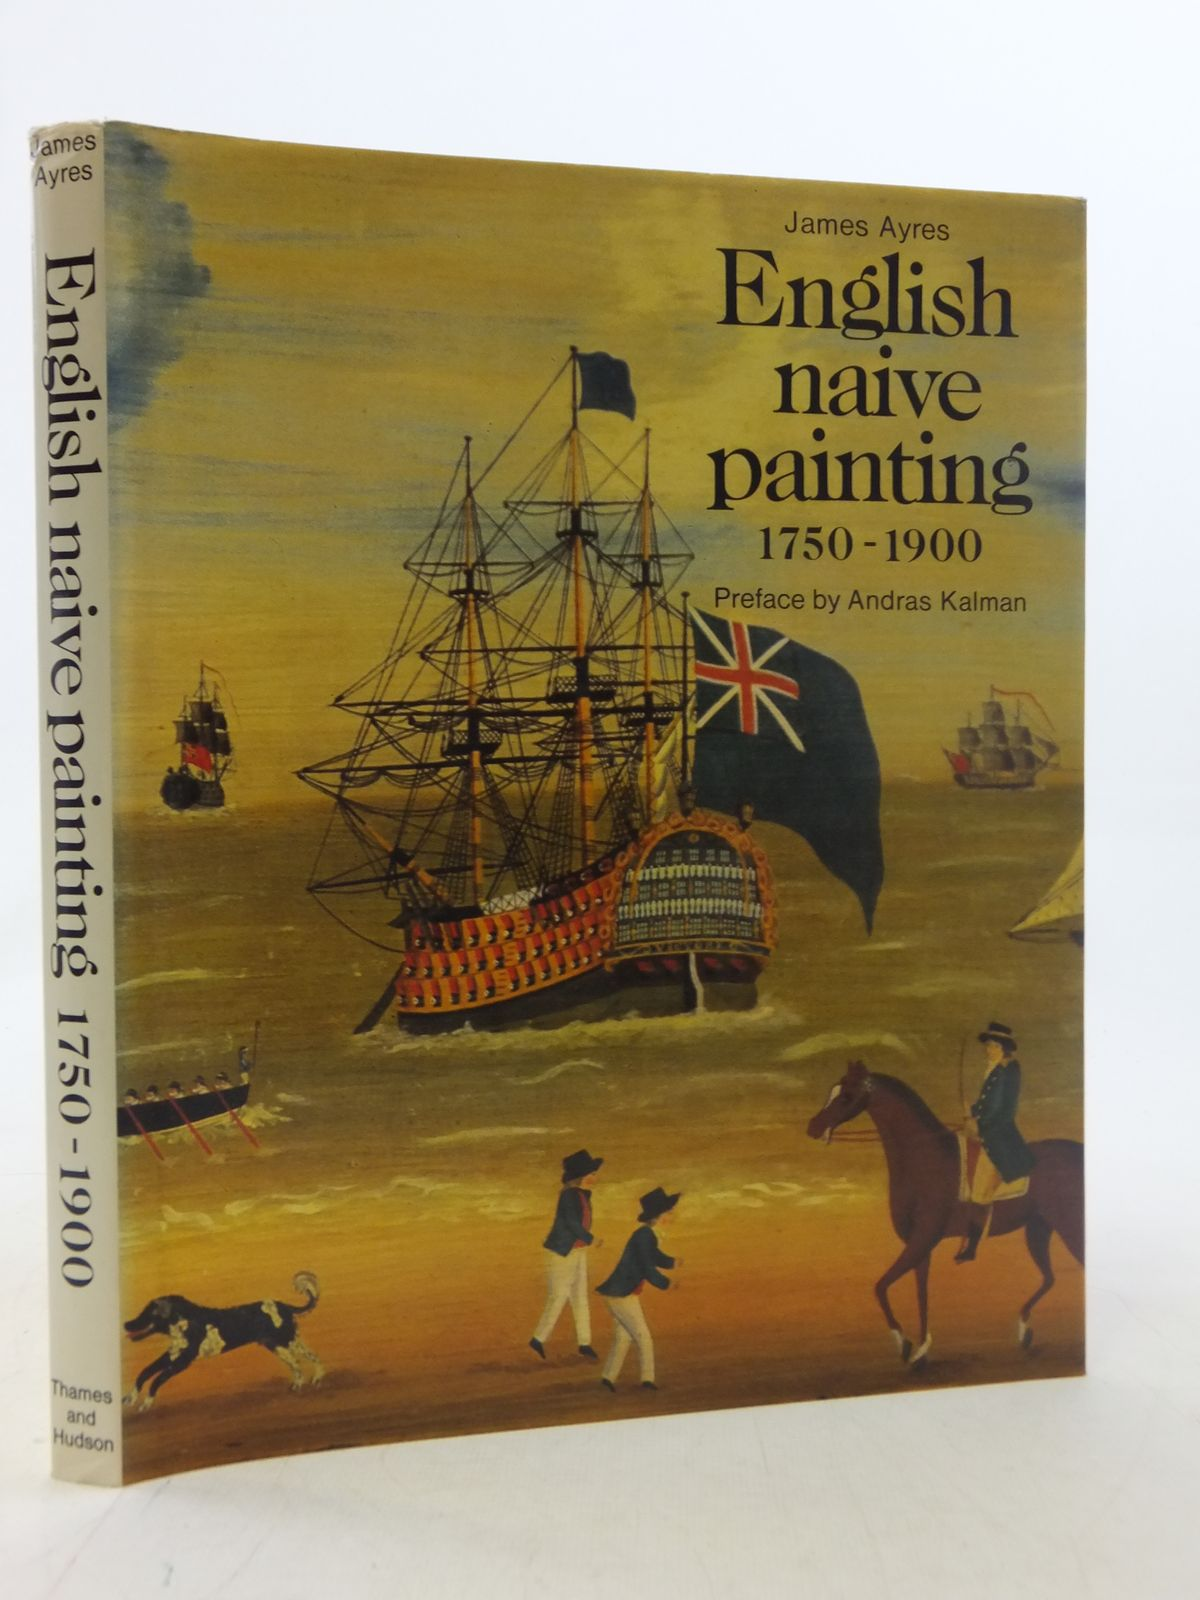 Photo of ENGLISH NAIVE PAINTING 1750 - 1900 written by Ayres, James Kalman, Andras published by Thames and Hudson (STOCK CODE: 1605798)  for sale by Stella & Rose's Books